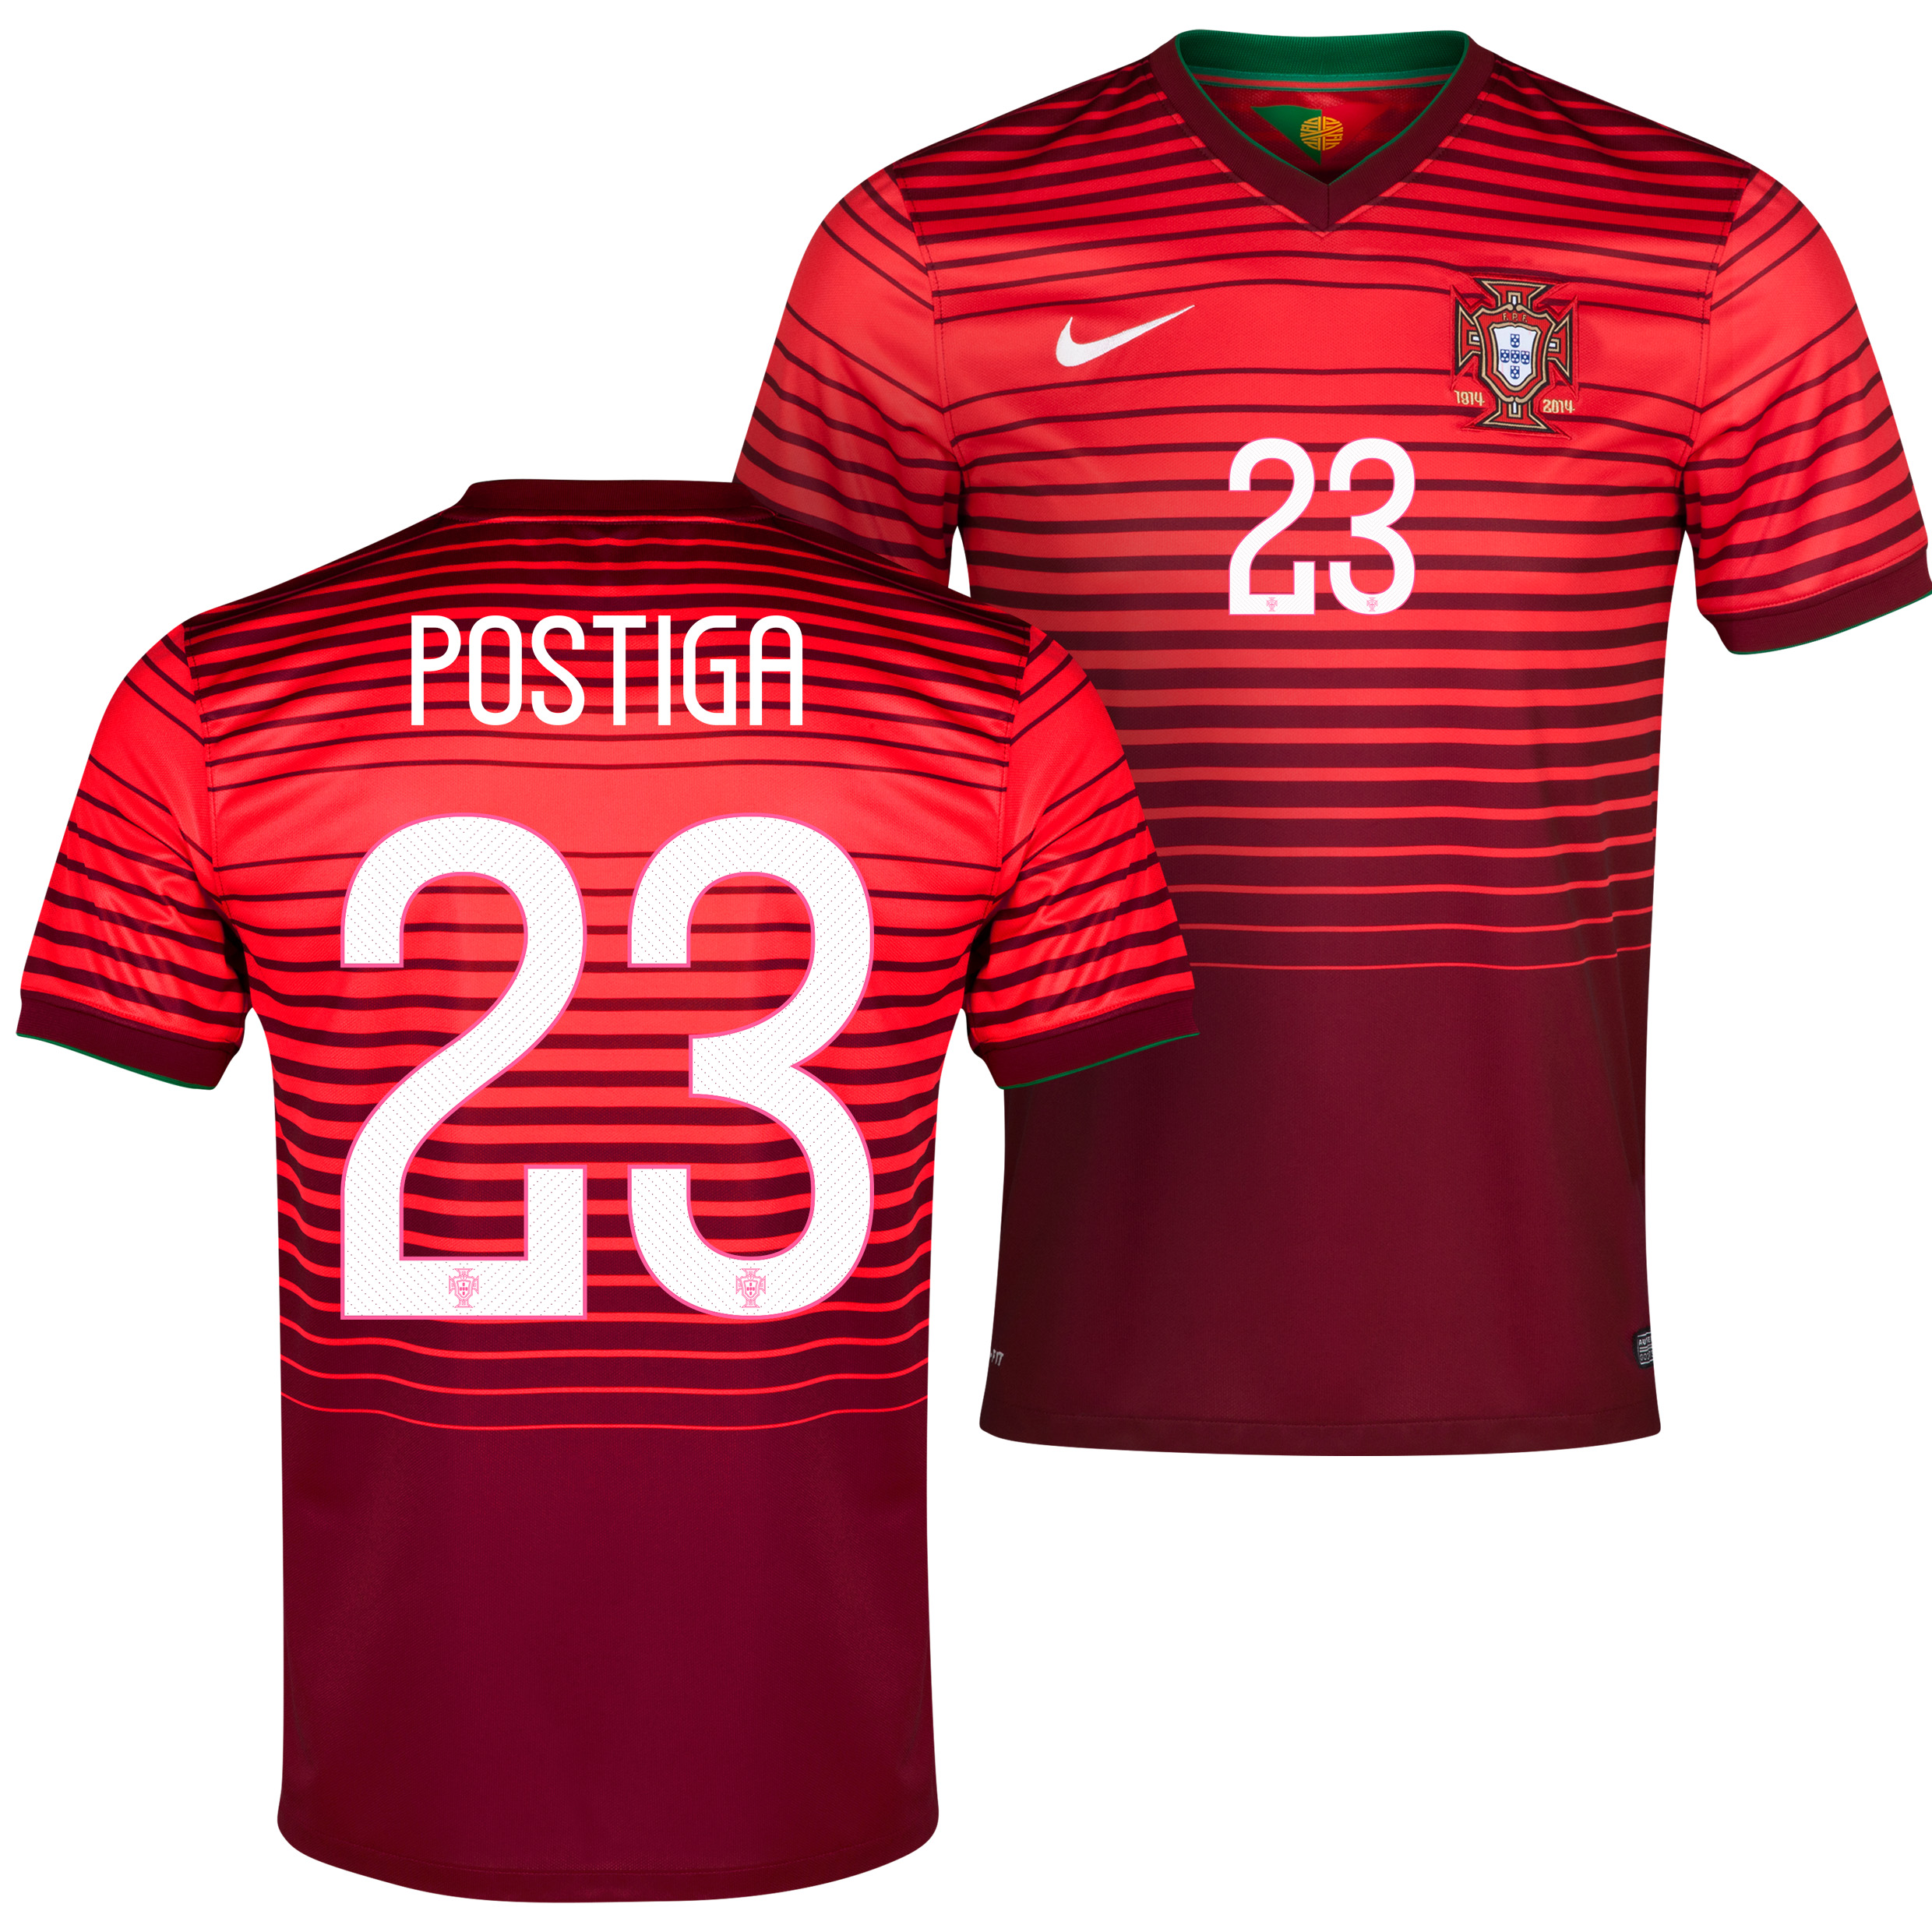 Portugal Home Shirt 2013/15 Red with Postiga 23 printing